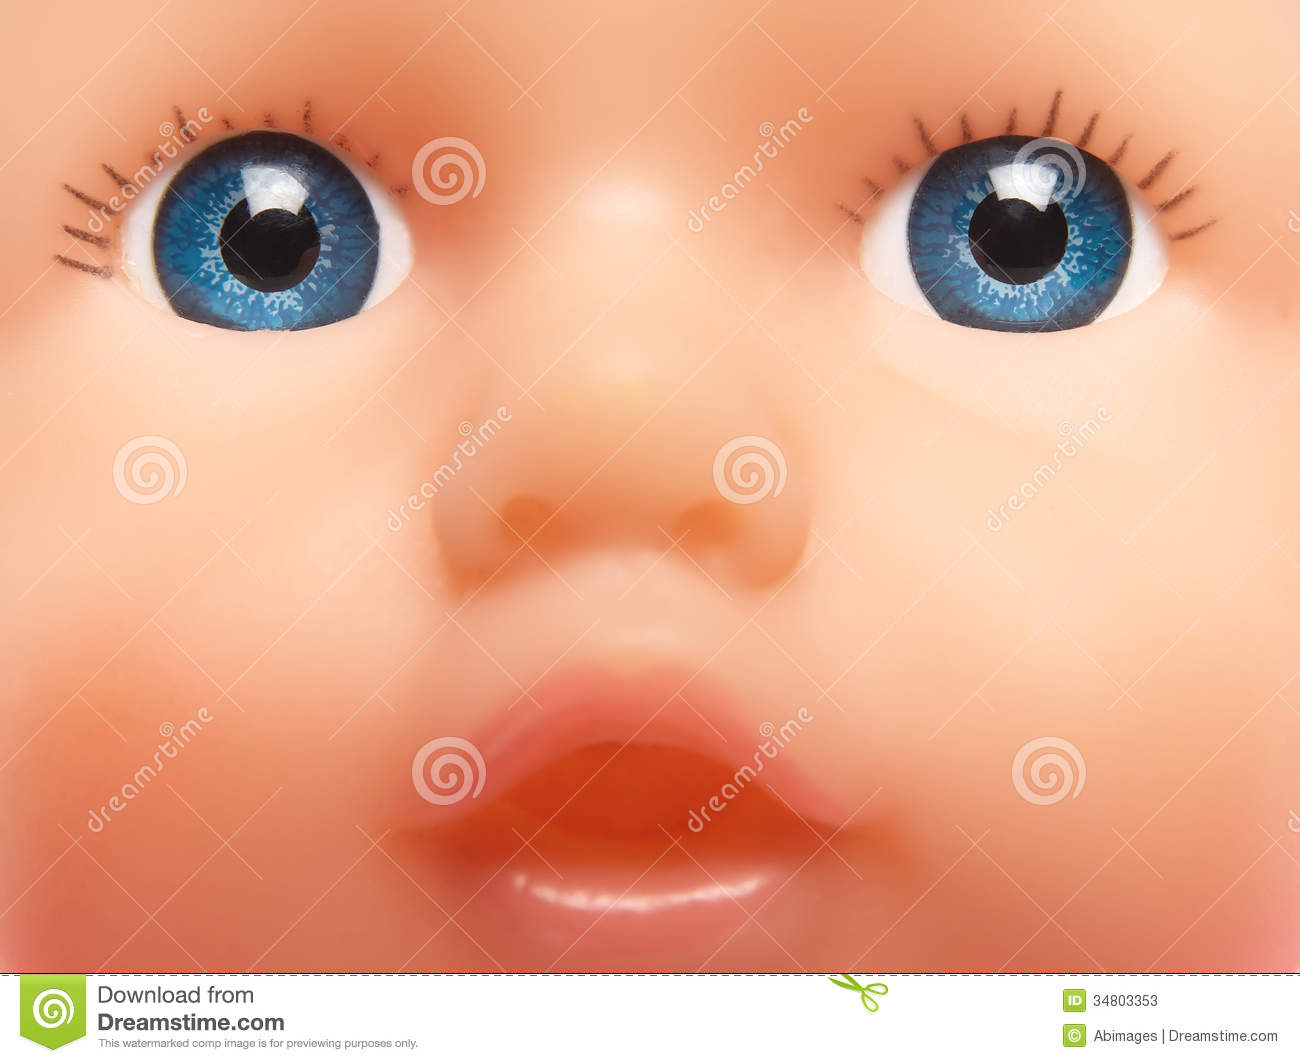 how to make a doll face